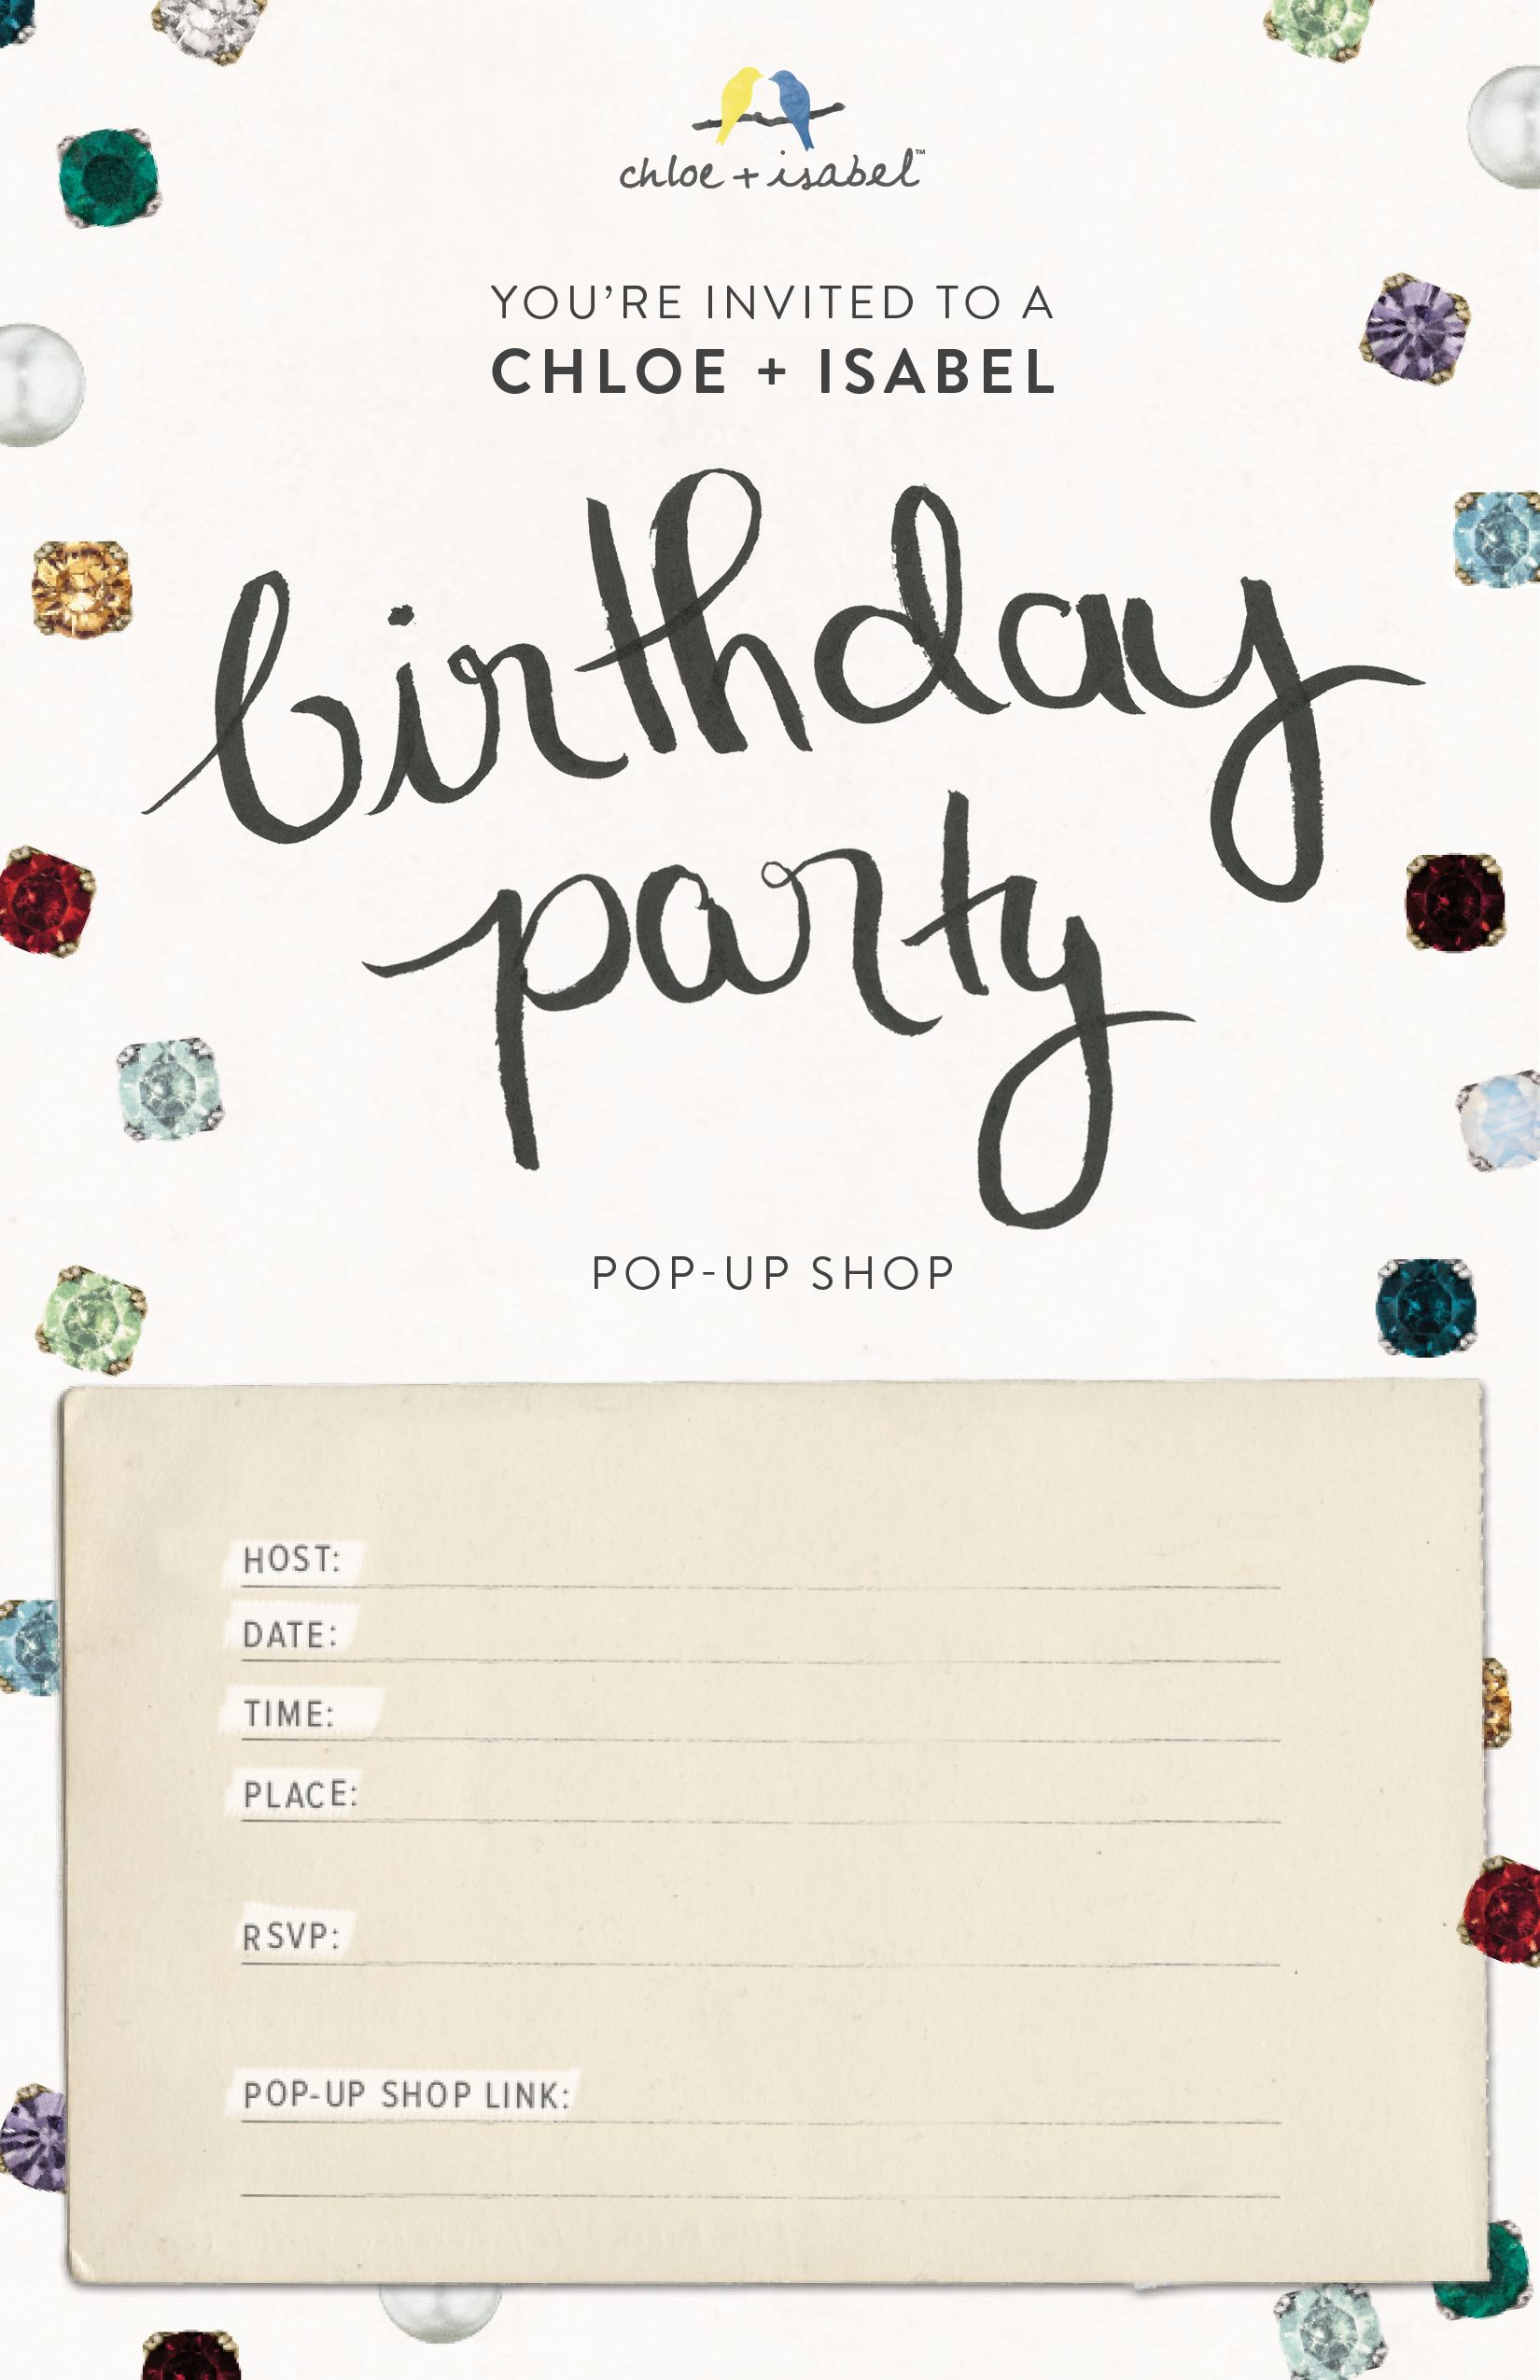 Birthday Party Pop-up Invite (Would be fun to have a jewelry pop up BDAY party in the Boston/Essex/Merrimack Valley area for your friends!) Contact me at klibanskyp@gmail.com if interested- free giveaways and fun XO